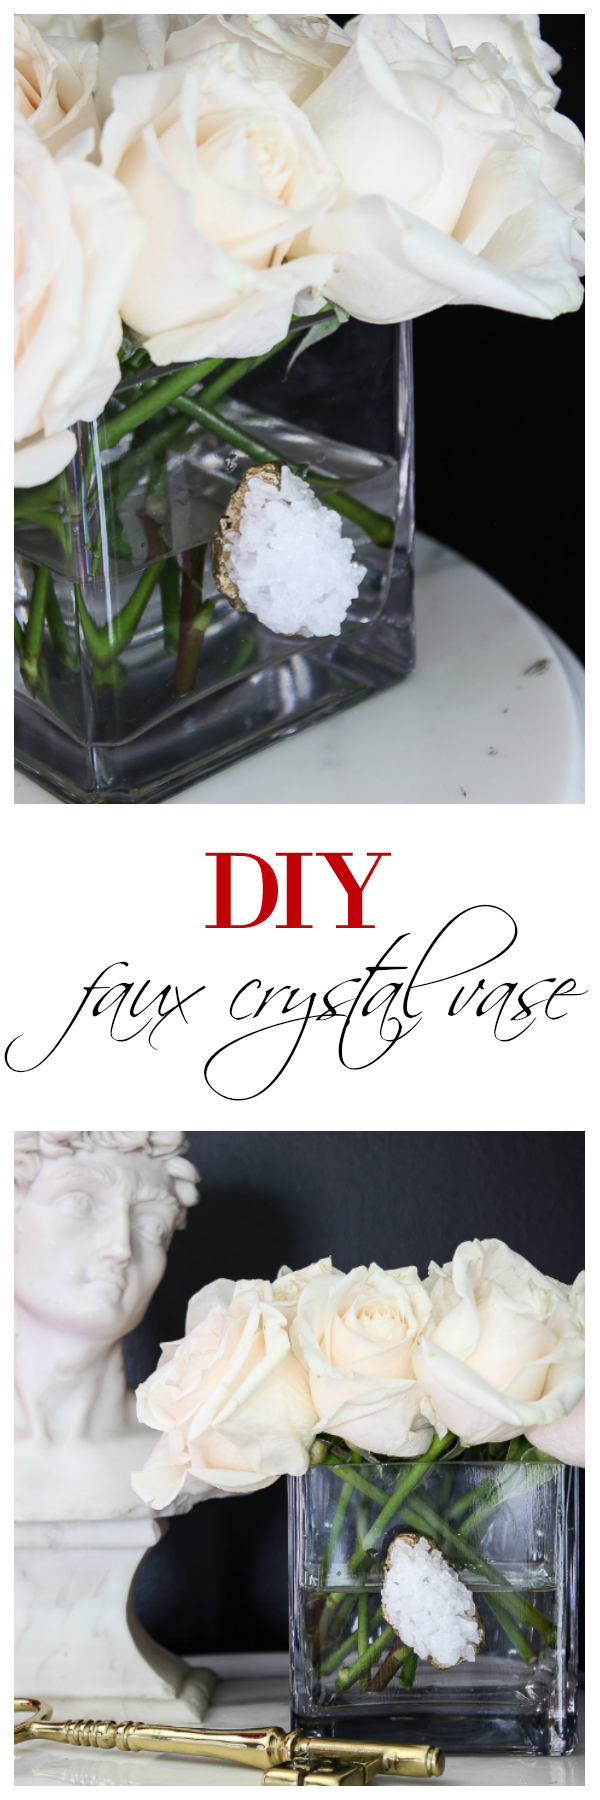 Diy faux crystal vase diy faux crystal vase diy vase ideas diy vase decor vase decorating ideas reviewsmspy